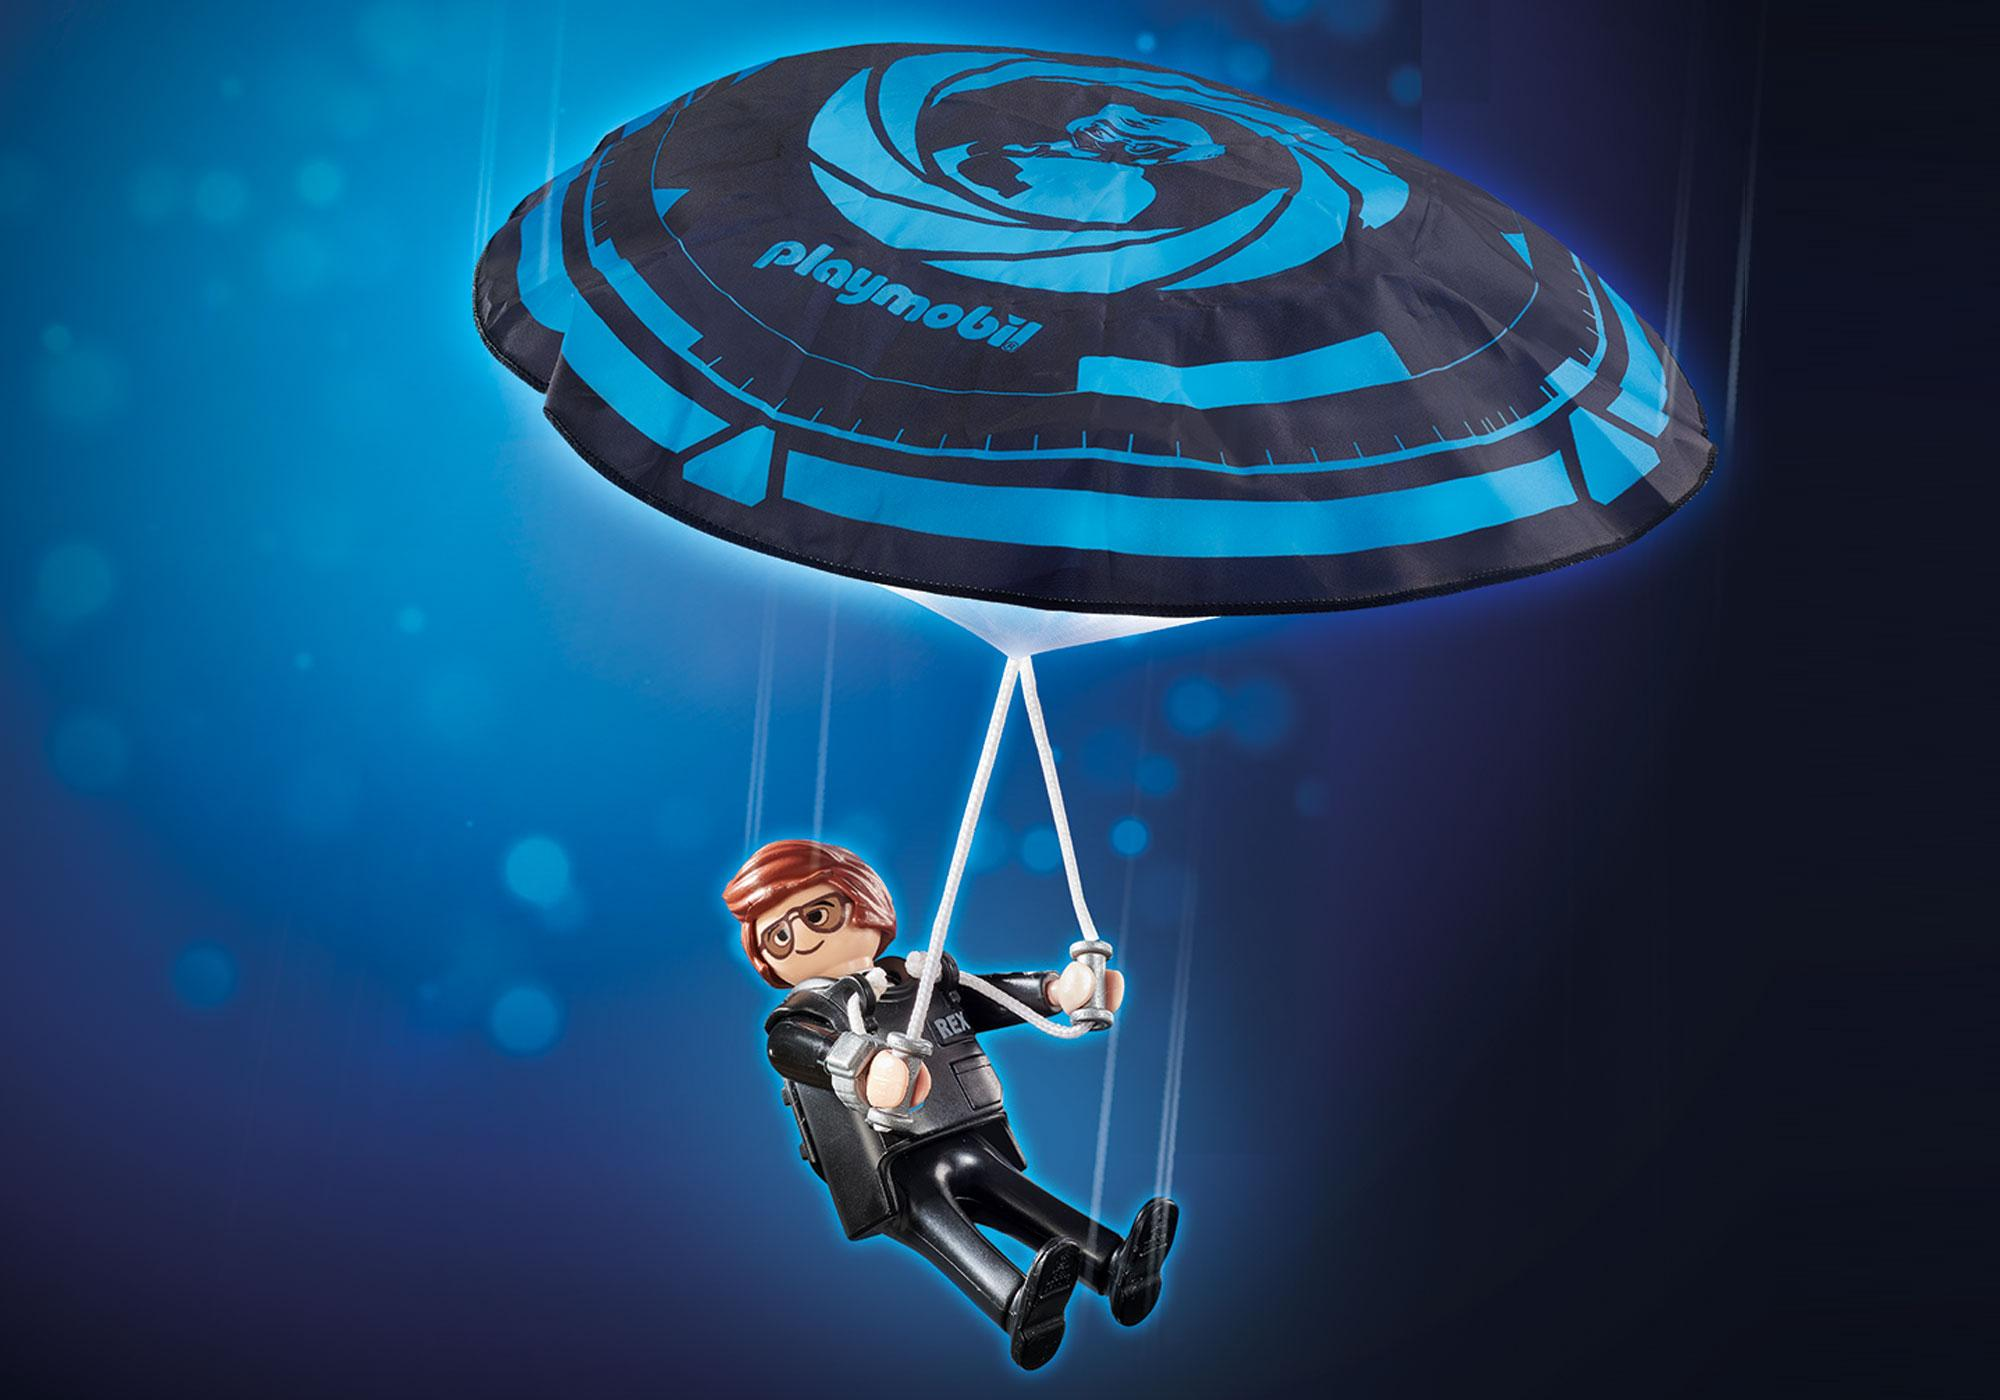 70070_product_detail/PLAYMOBIL:THE MOVIE Rex Dasher mit Fallschirm